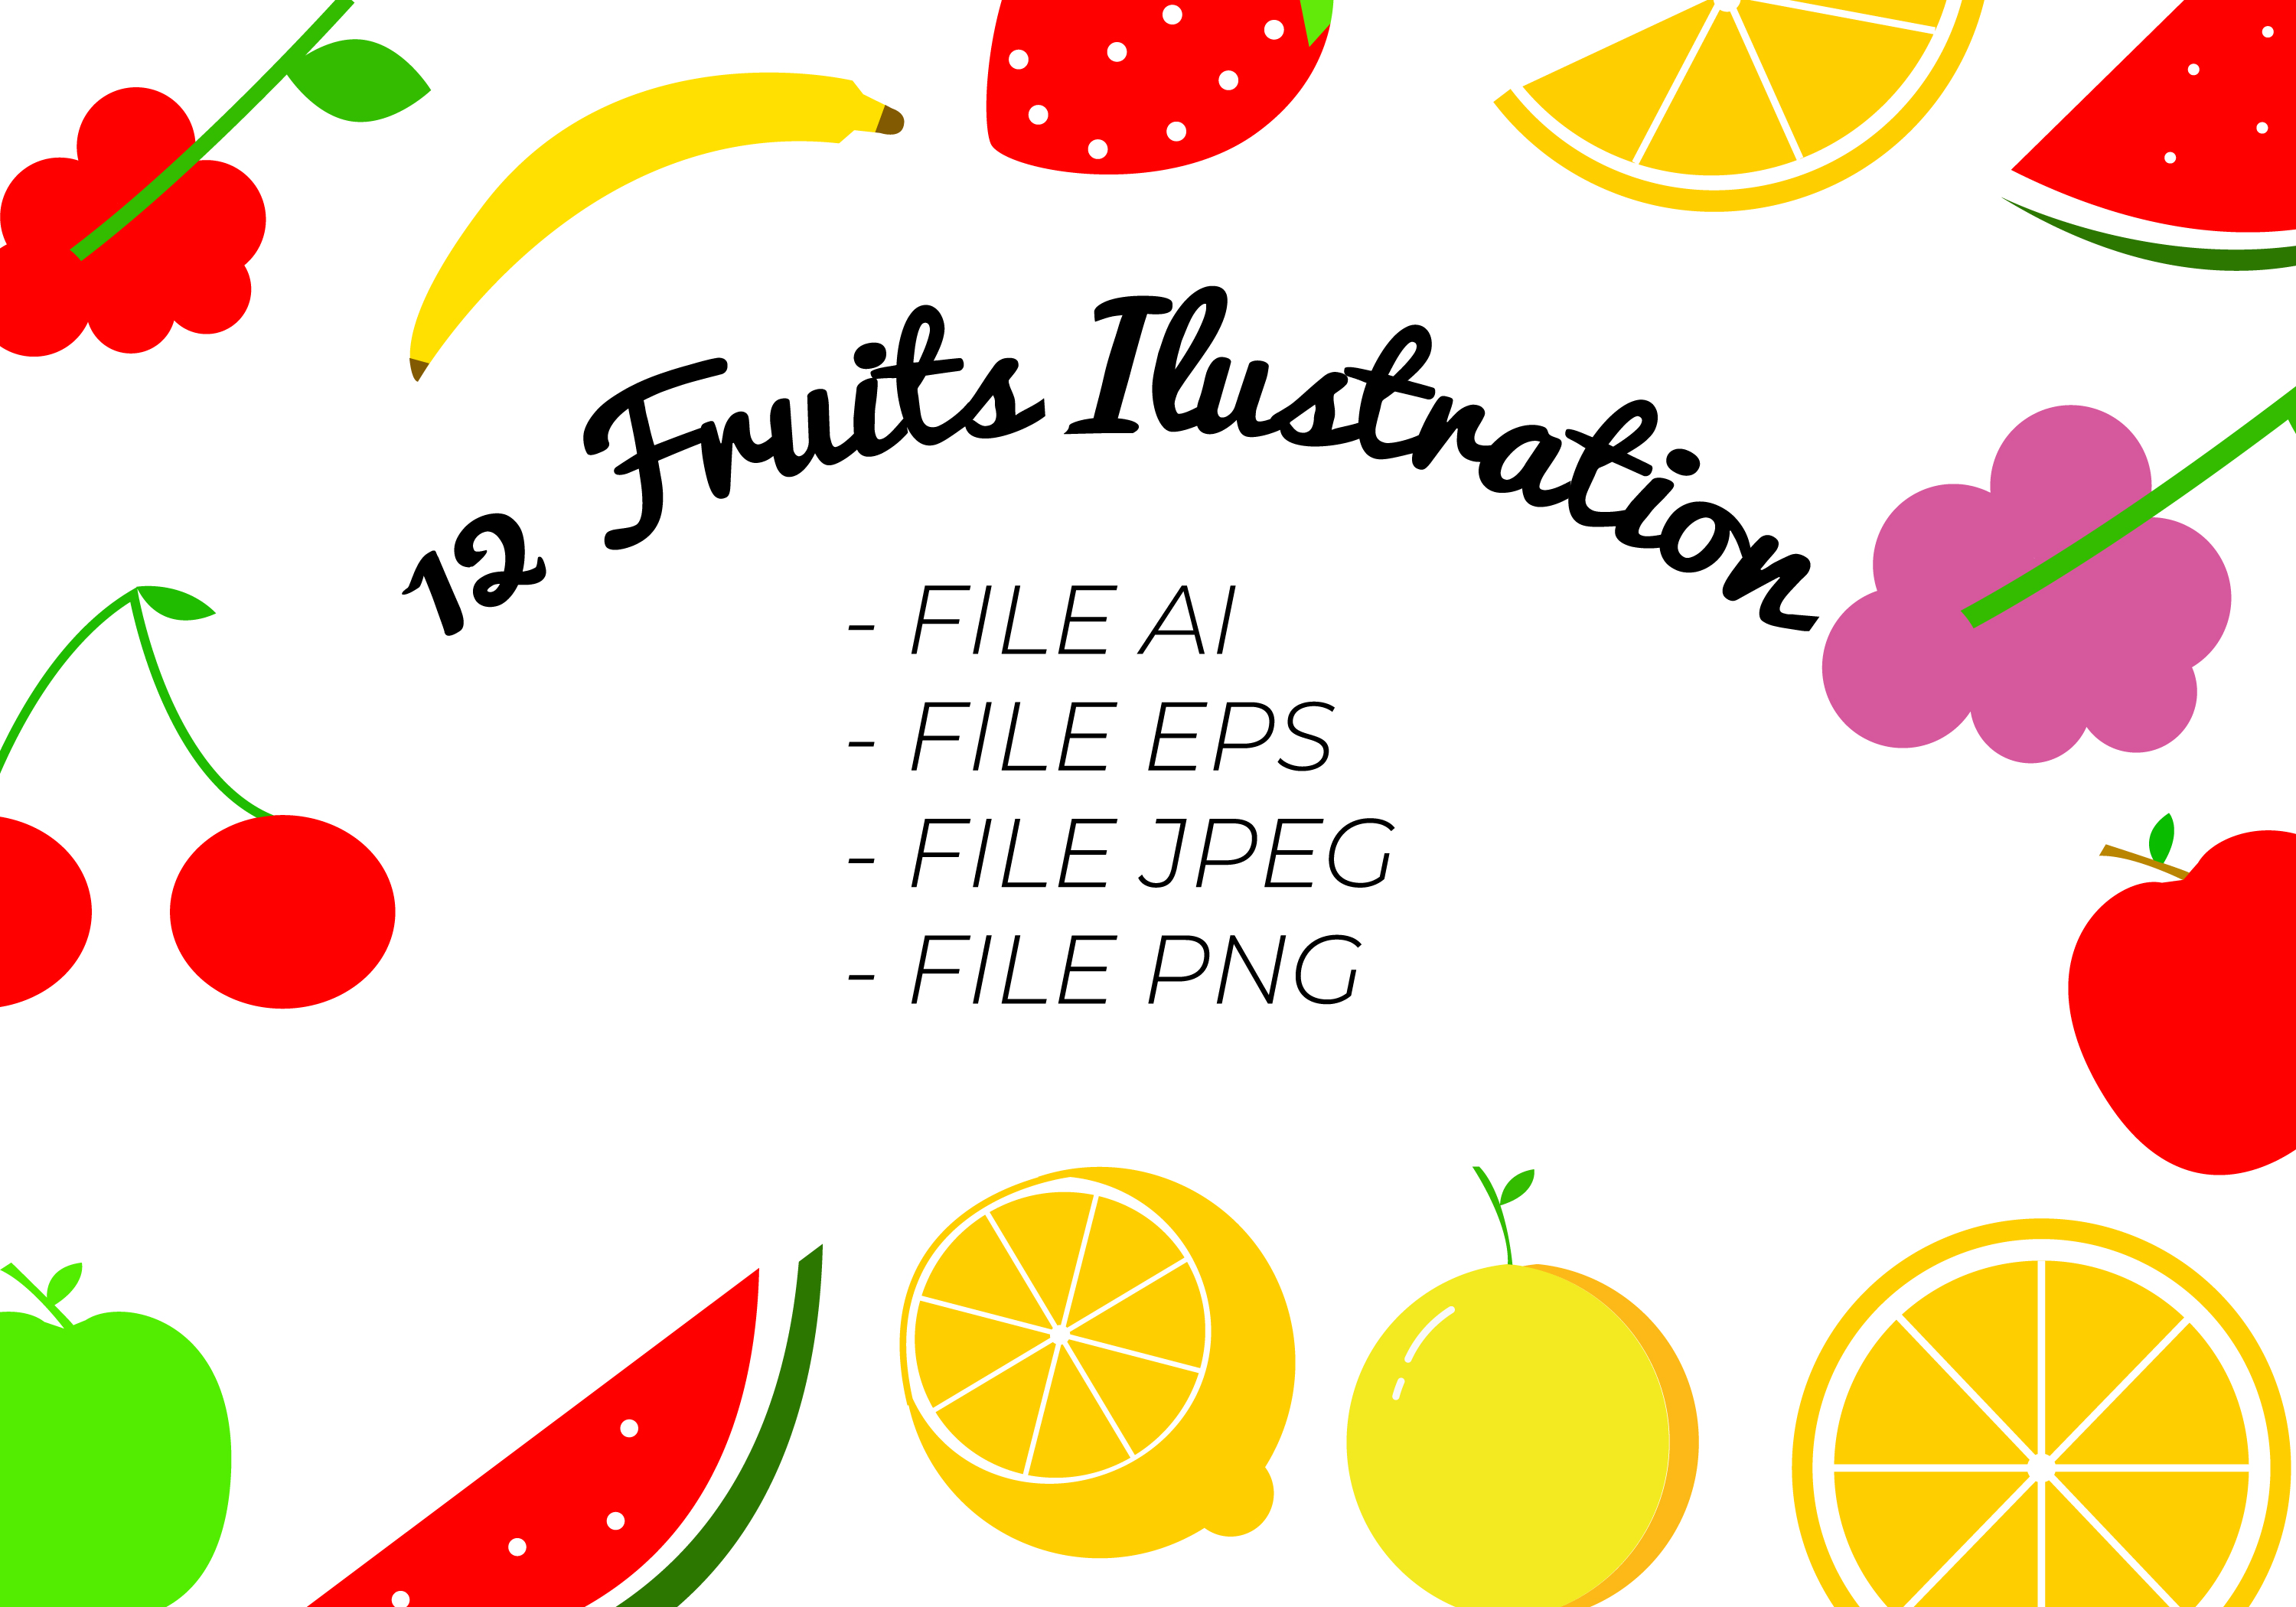 Clipart Fruits Ilustration Graphic By Handles Creative Creative Fabrica